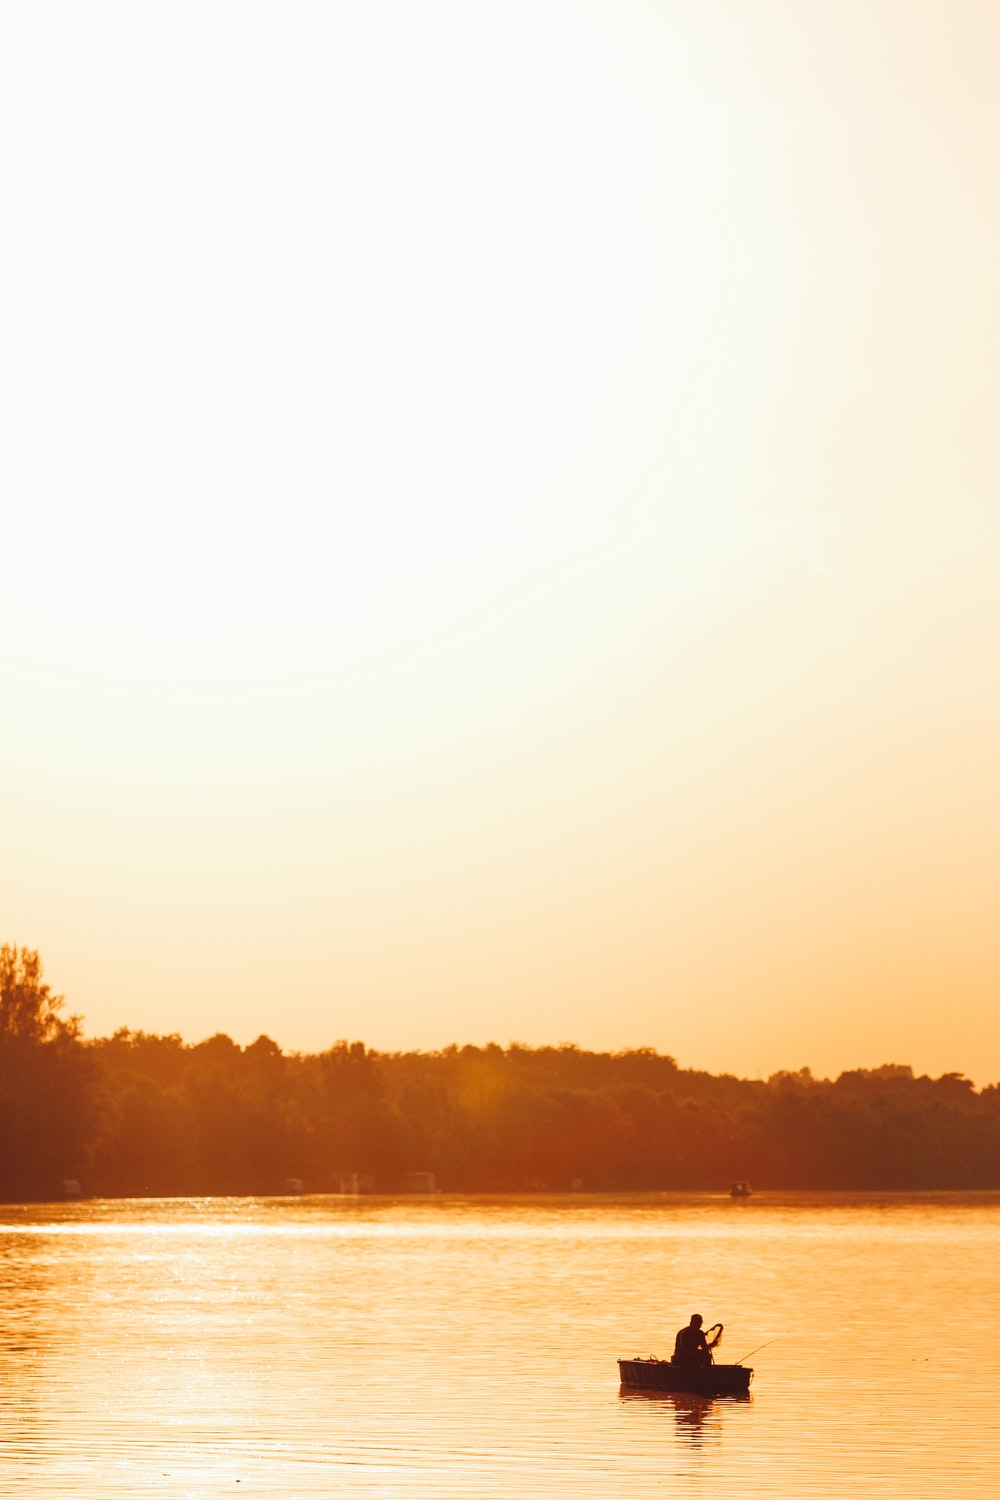 silhouette of person on boat at the center of the lake under clear sky